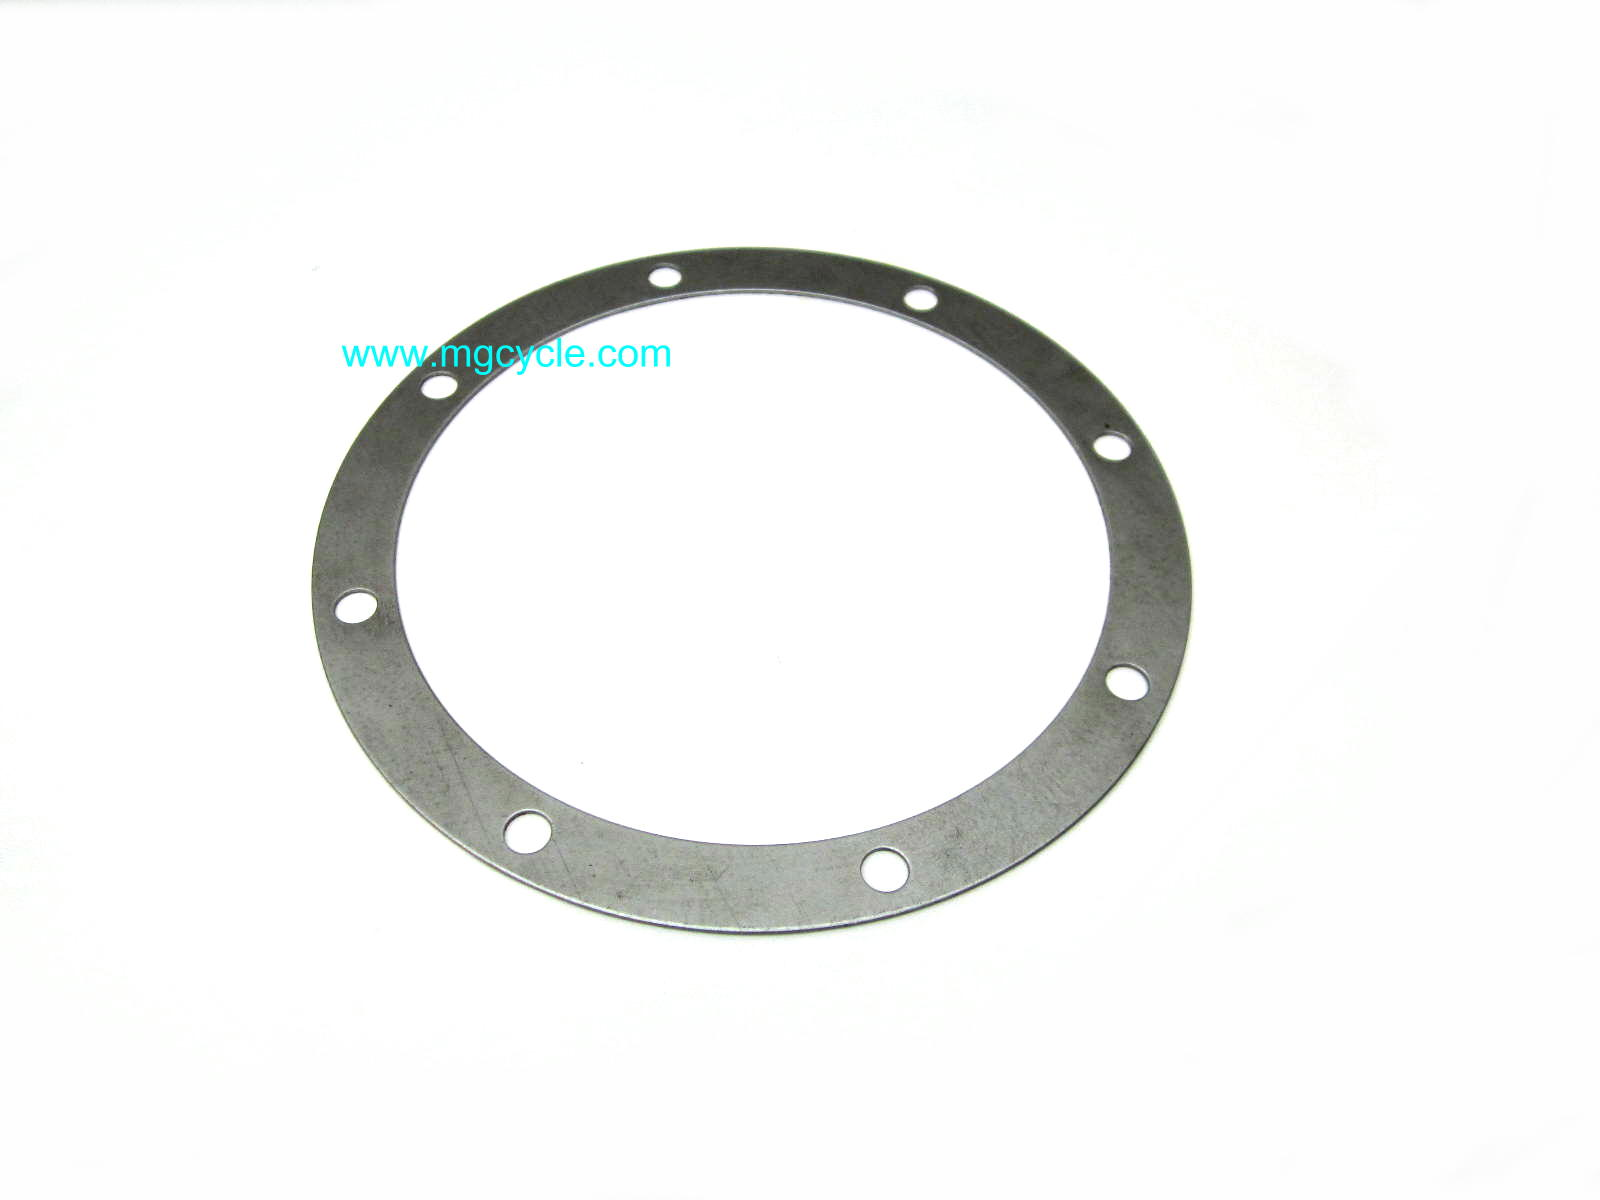 Rear drive box shim, large, 0.9 mm Disc brake